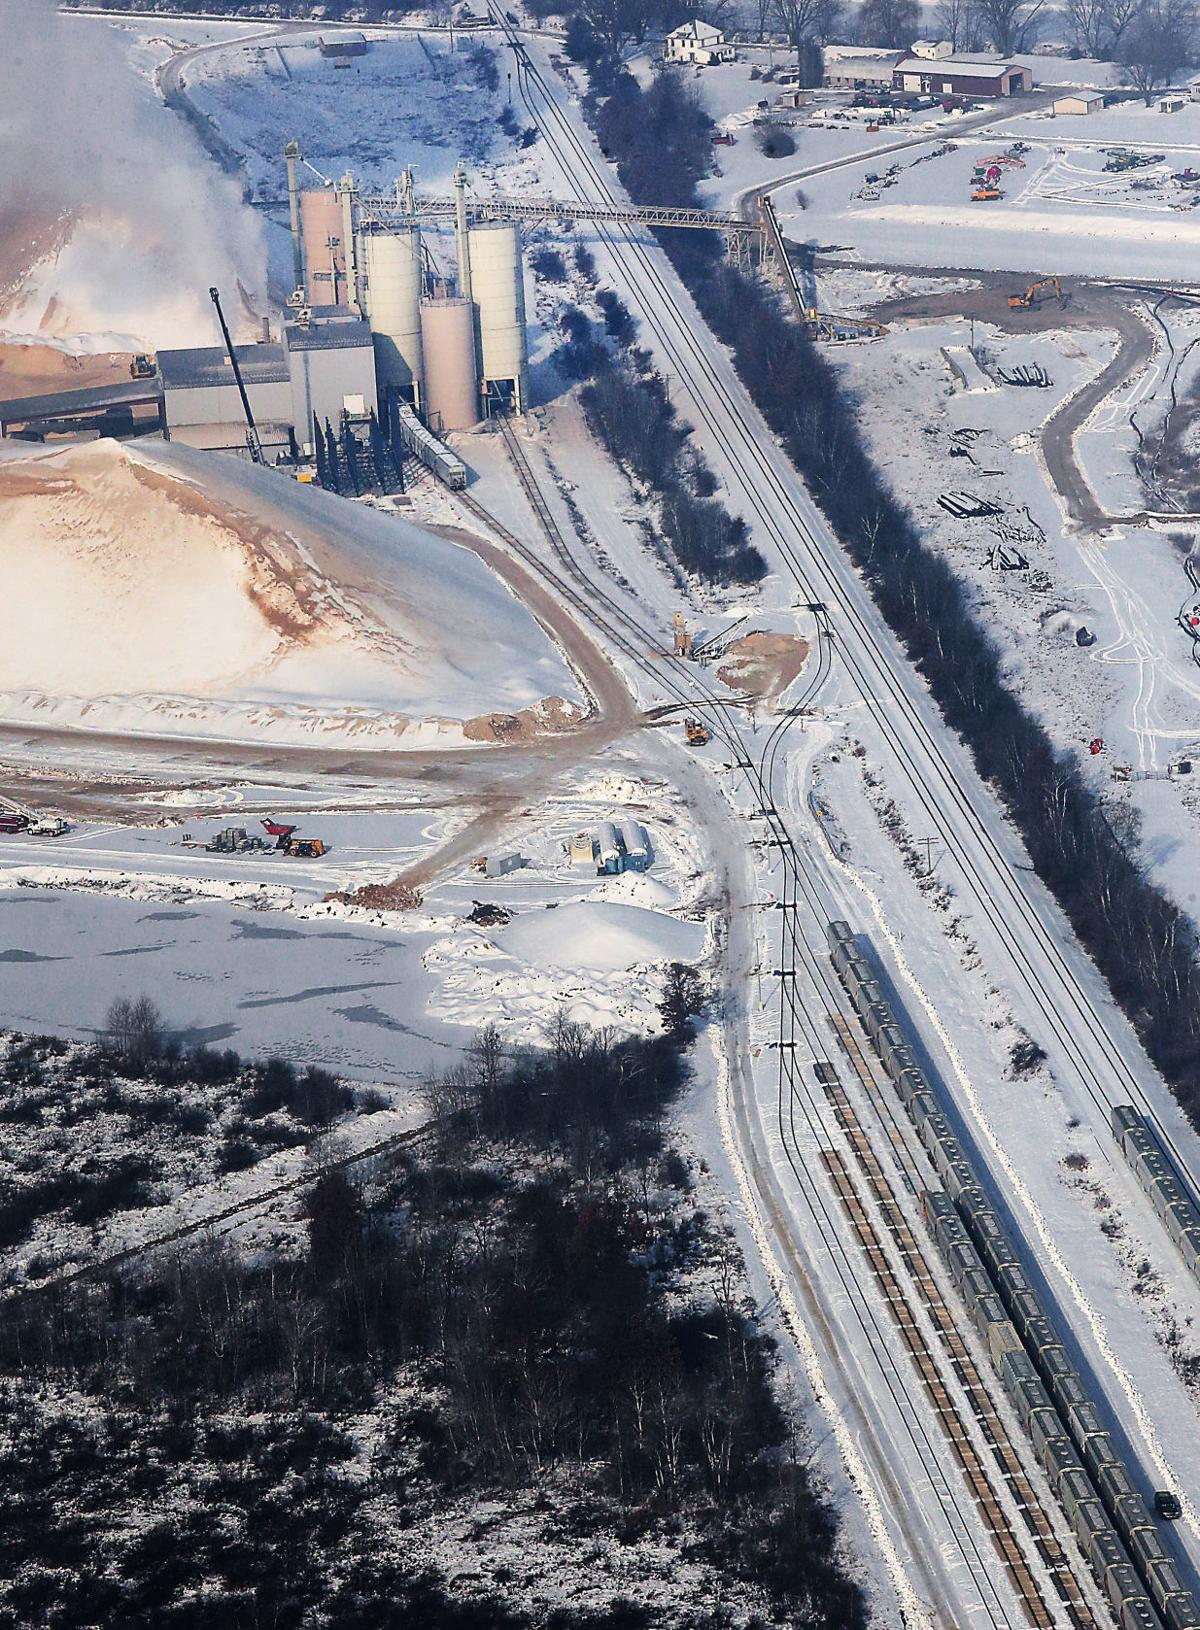 Frac sand producers spent millions on now underused rail yards